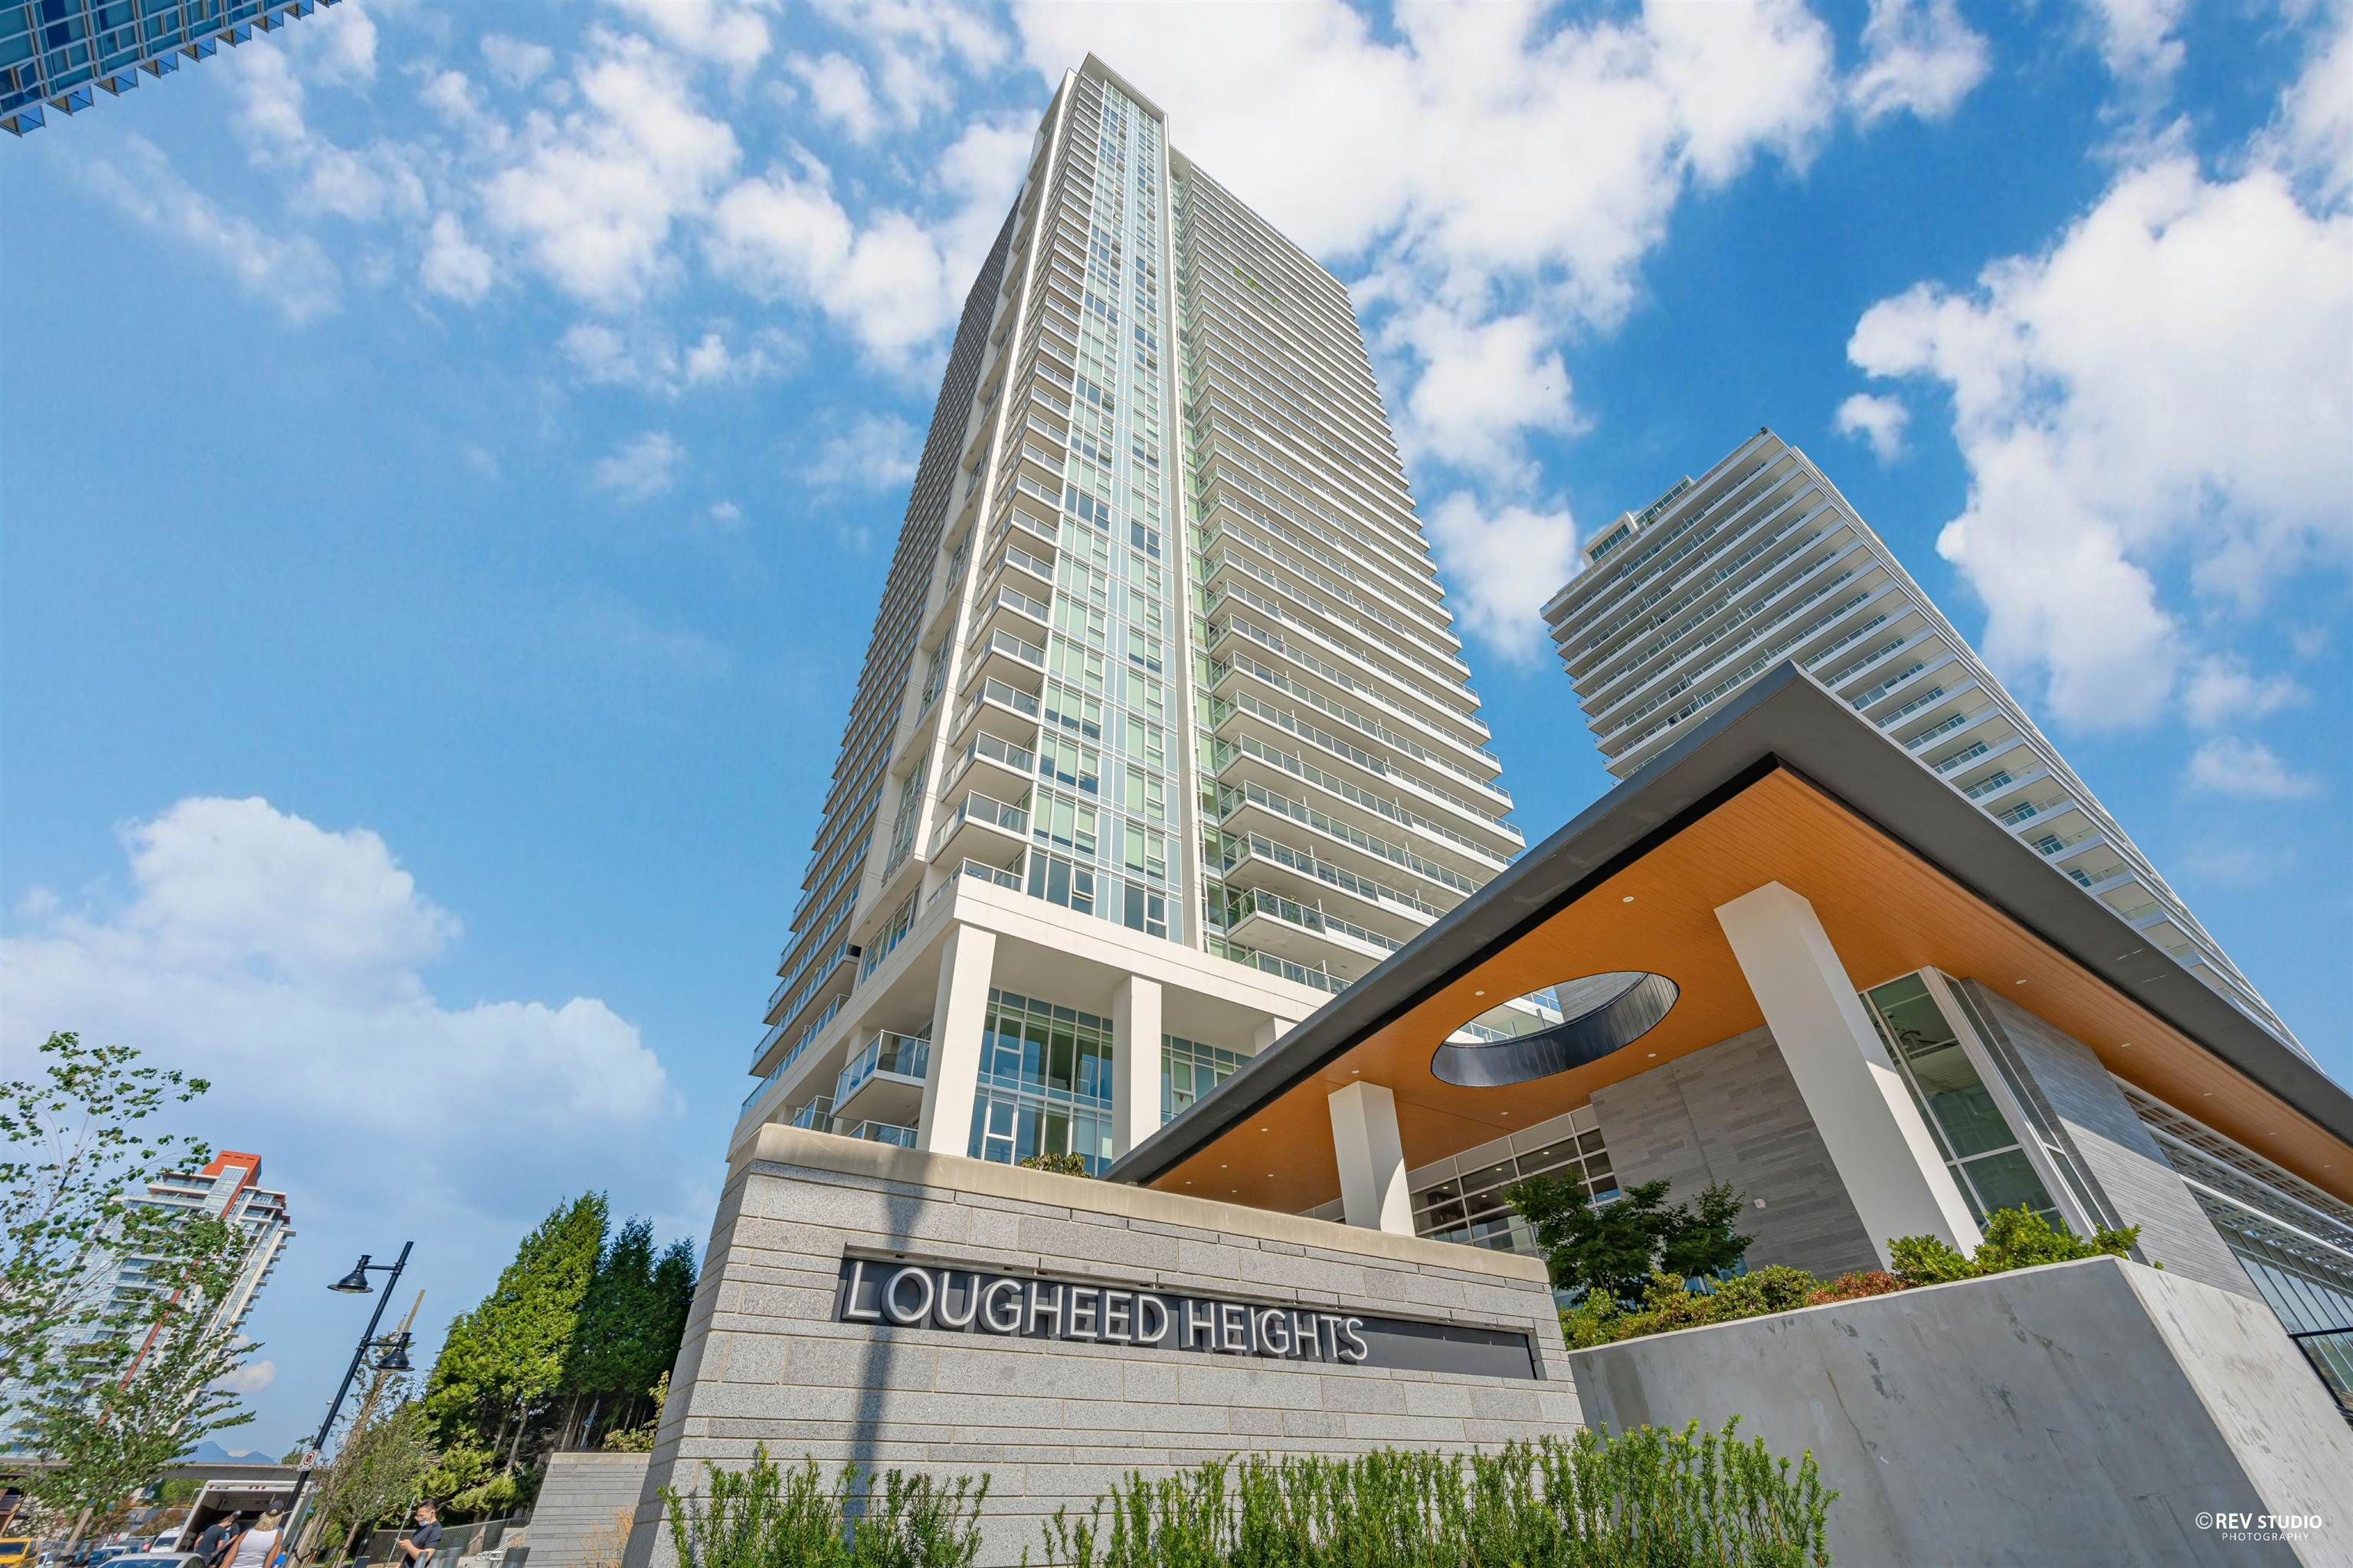 """Main Photo: 1101 525 FOSTER Avenue in Coquitlam: Coquitlam West Condo for sale in """"LOUGHEED HEIGHTS 2"""" : MLS®# R2612425"""